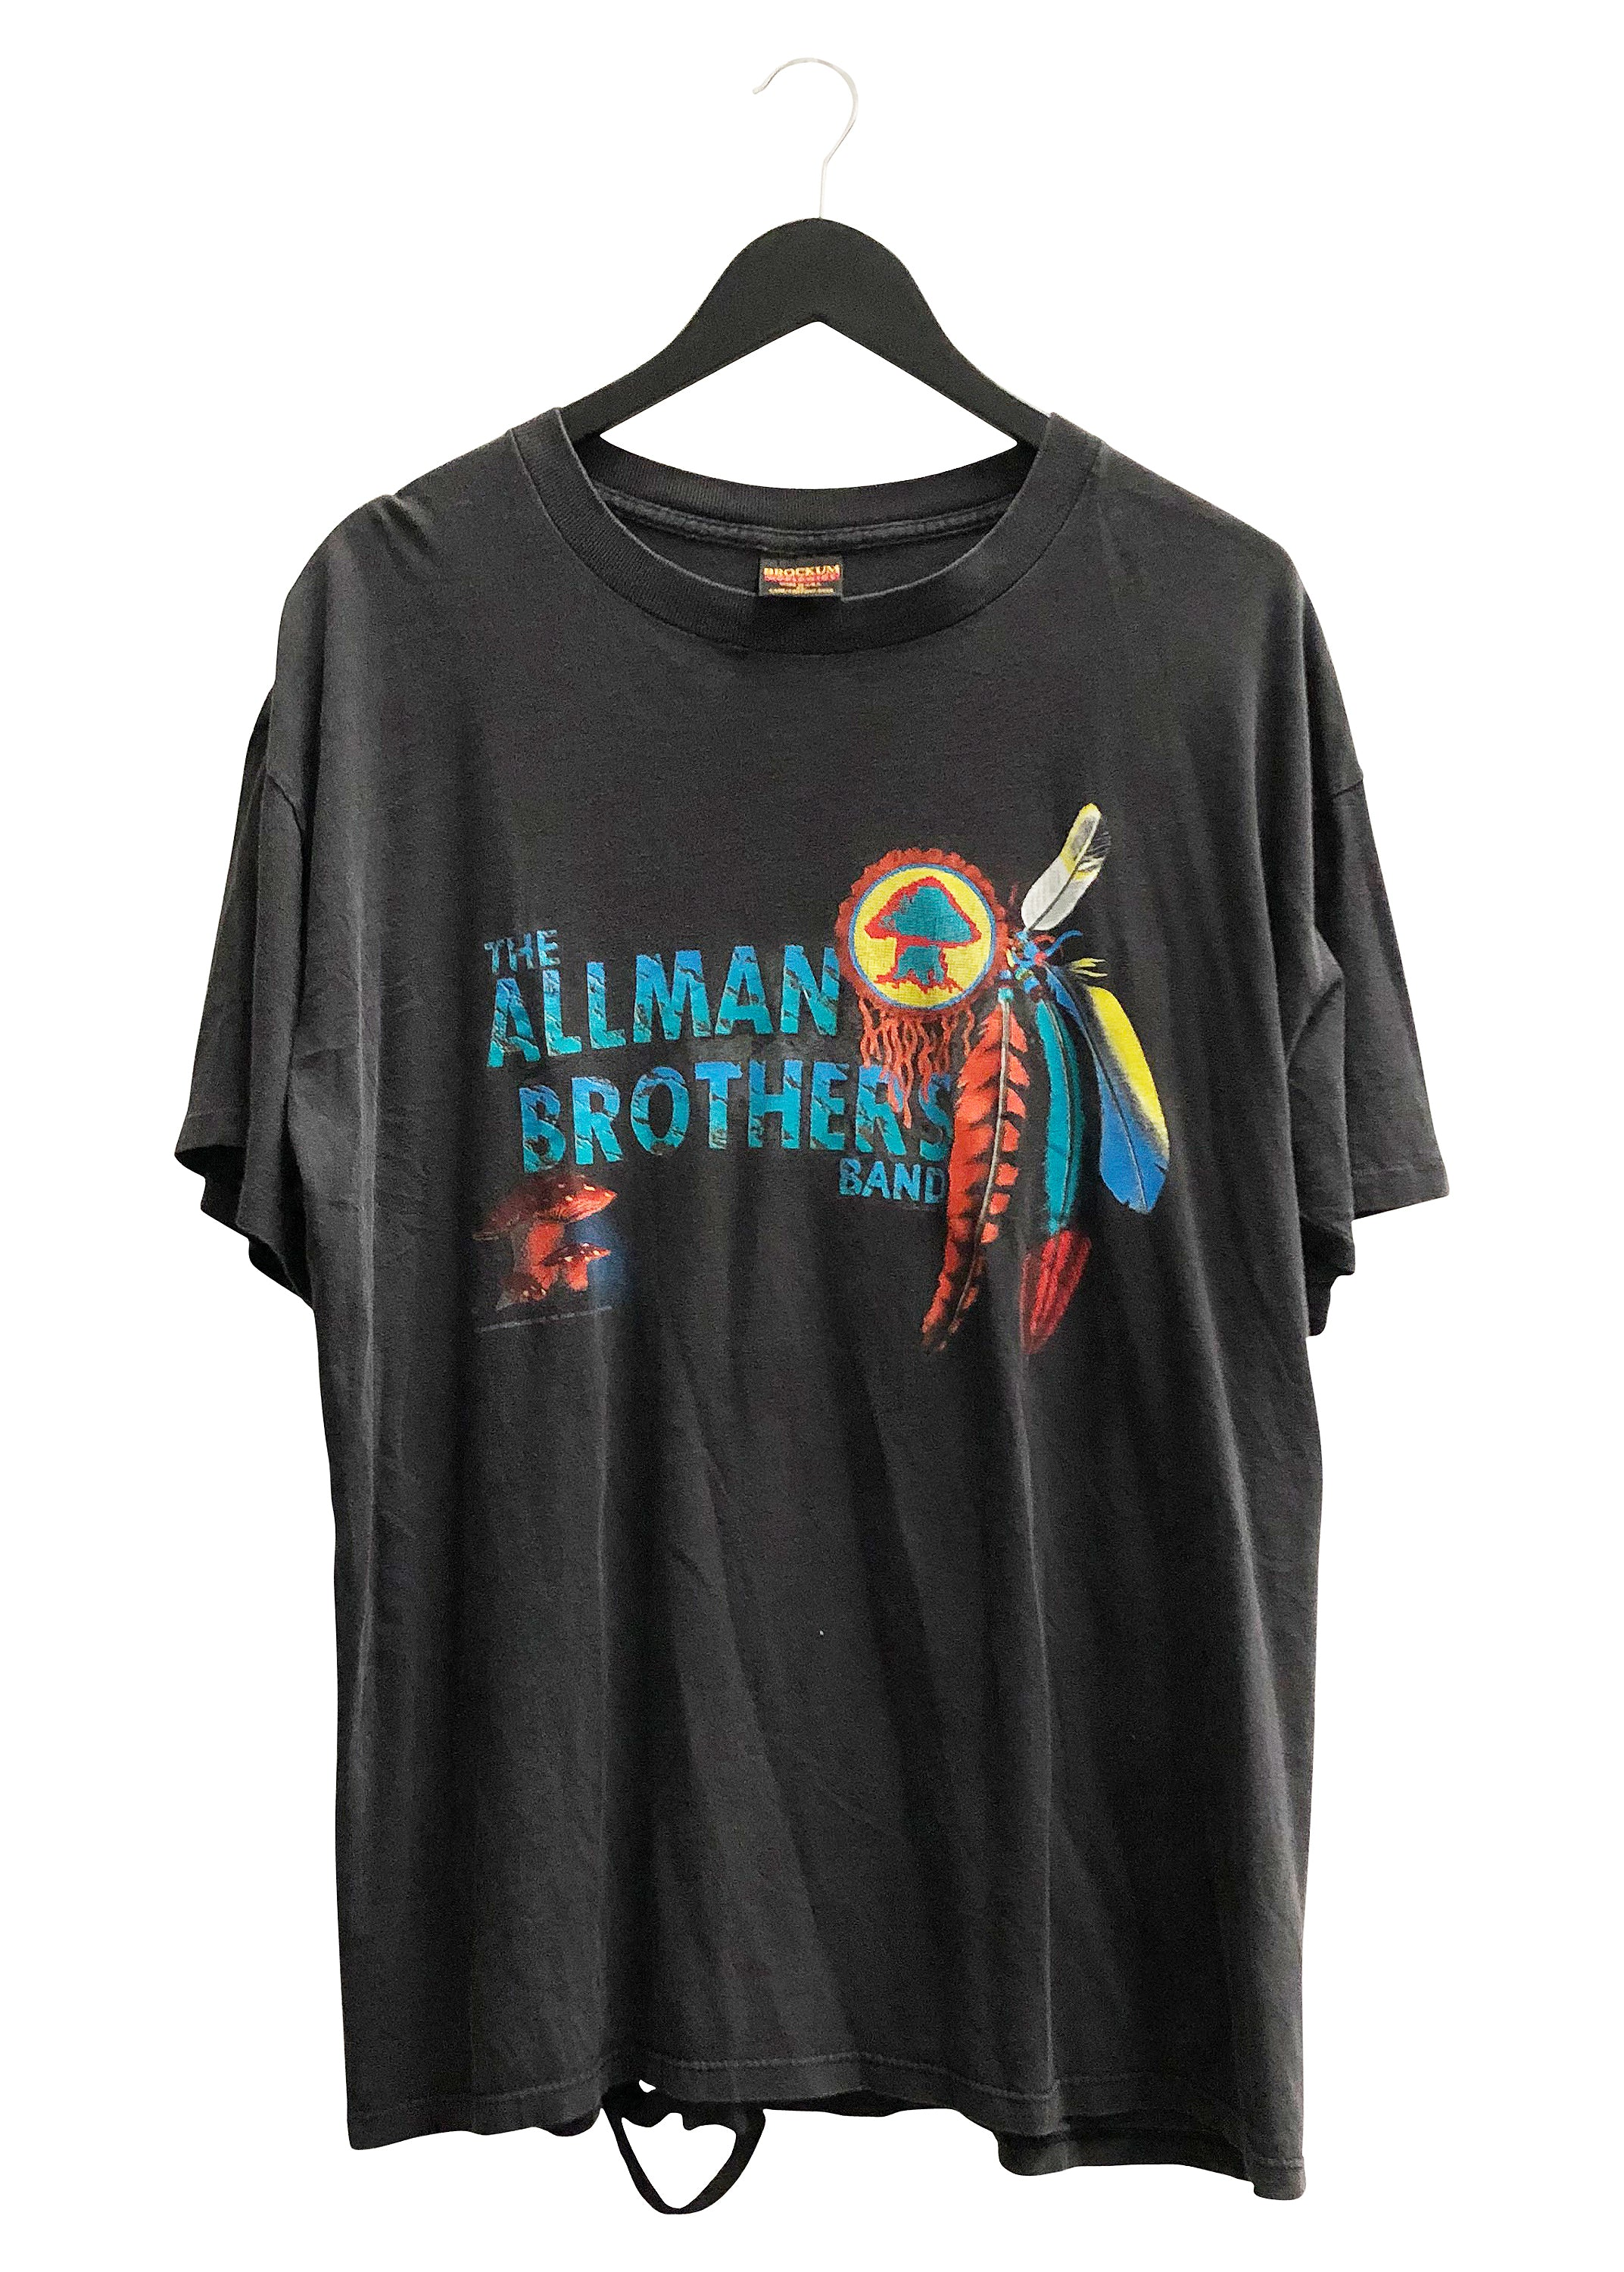 THE ALLMAN BROTHERS BAND VINTAGE TEE